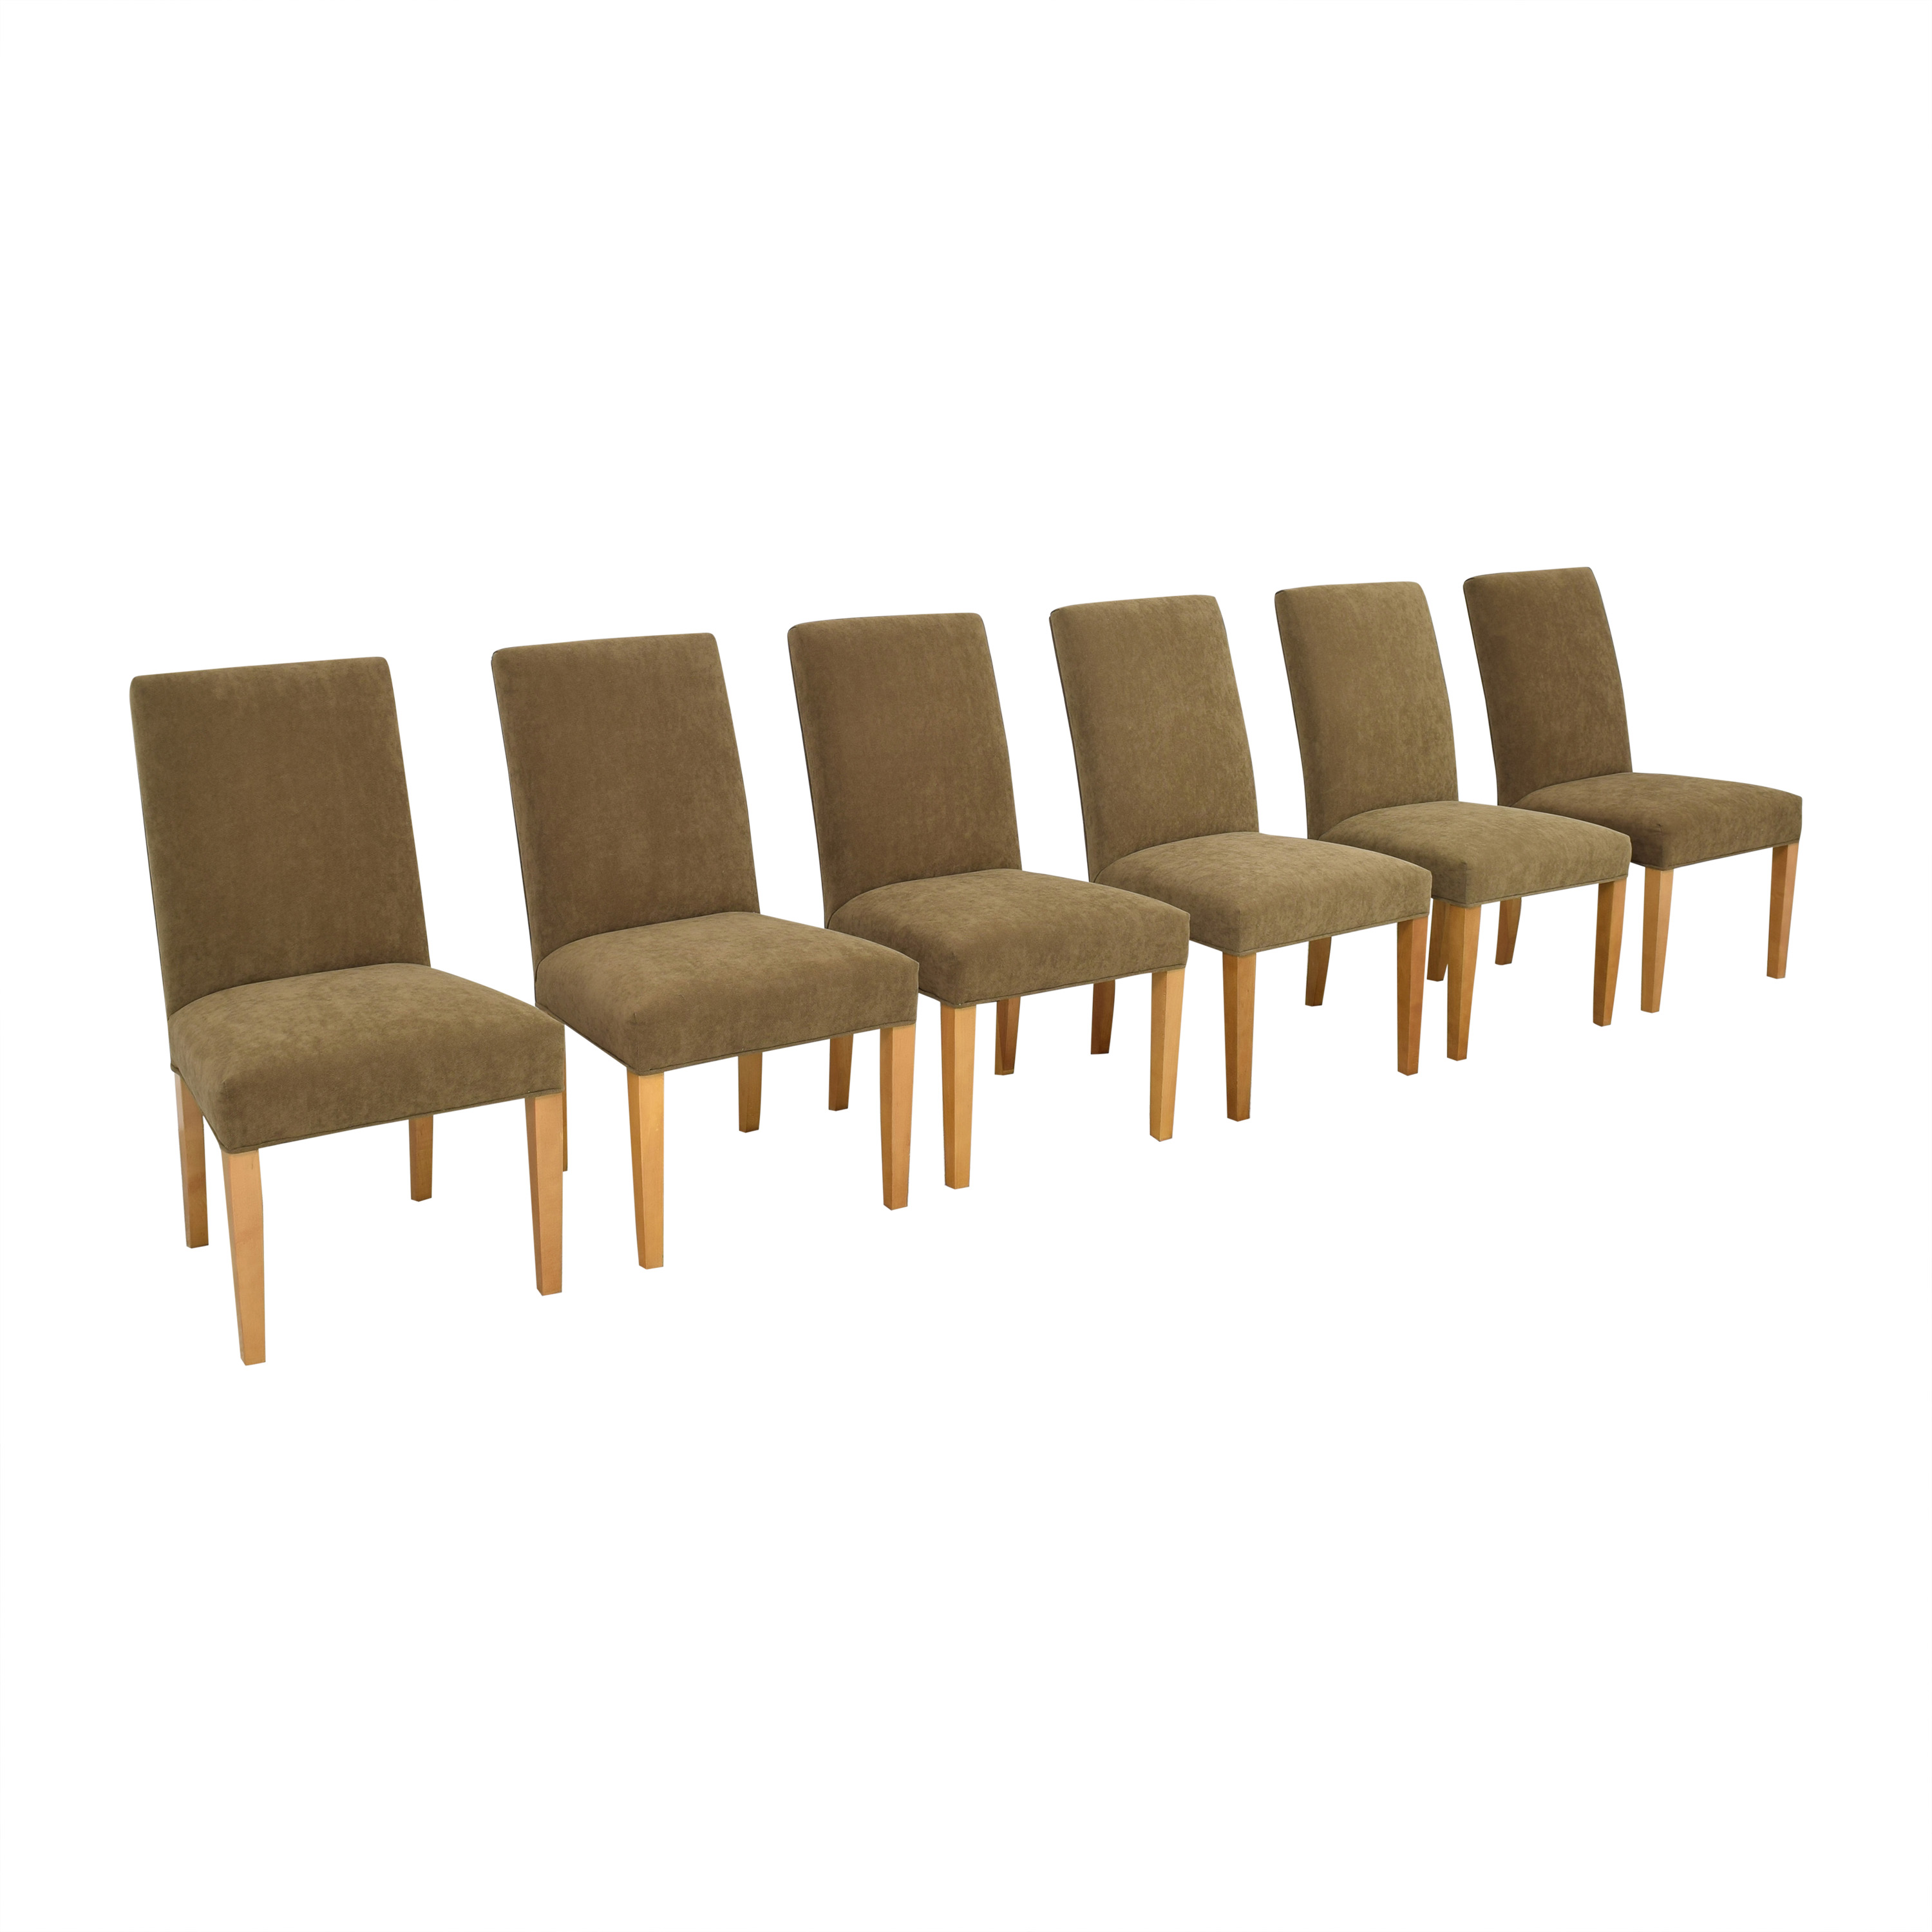 Crate & Barrel Crate & Barrel Miles Dining Chairs Dining Chairs